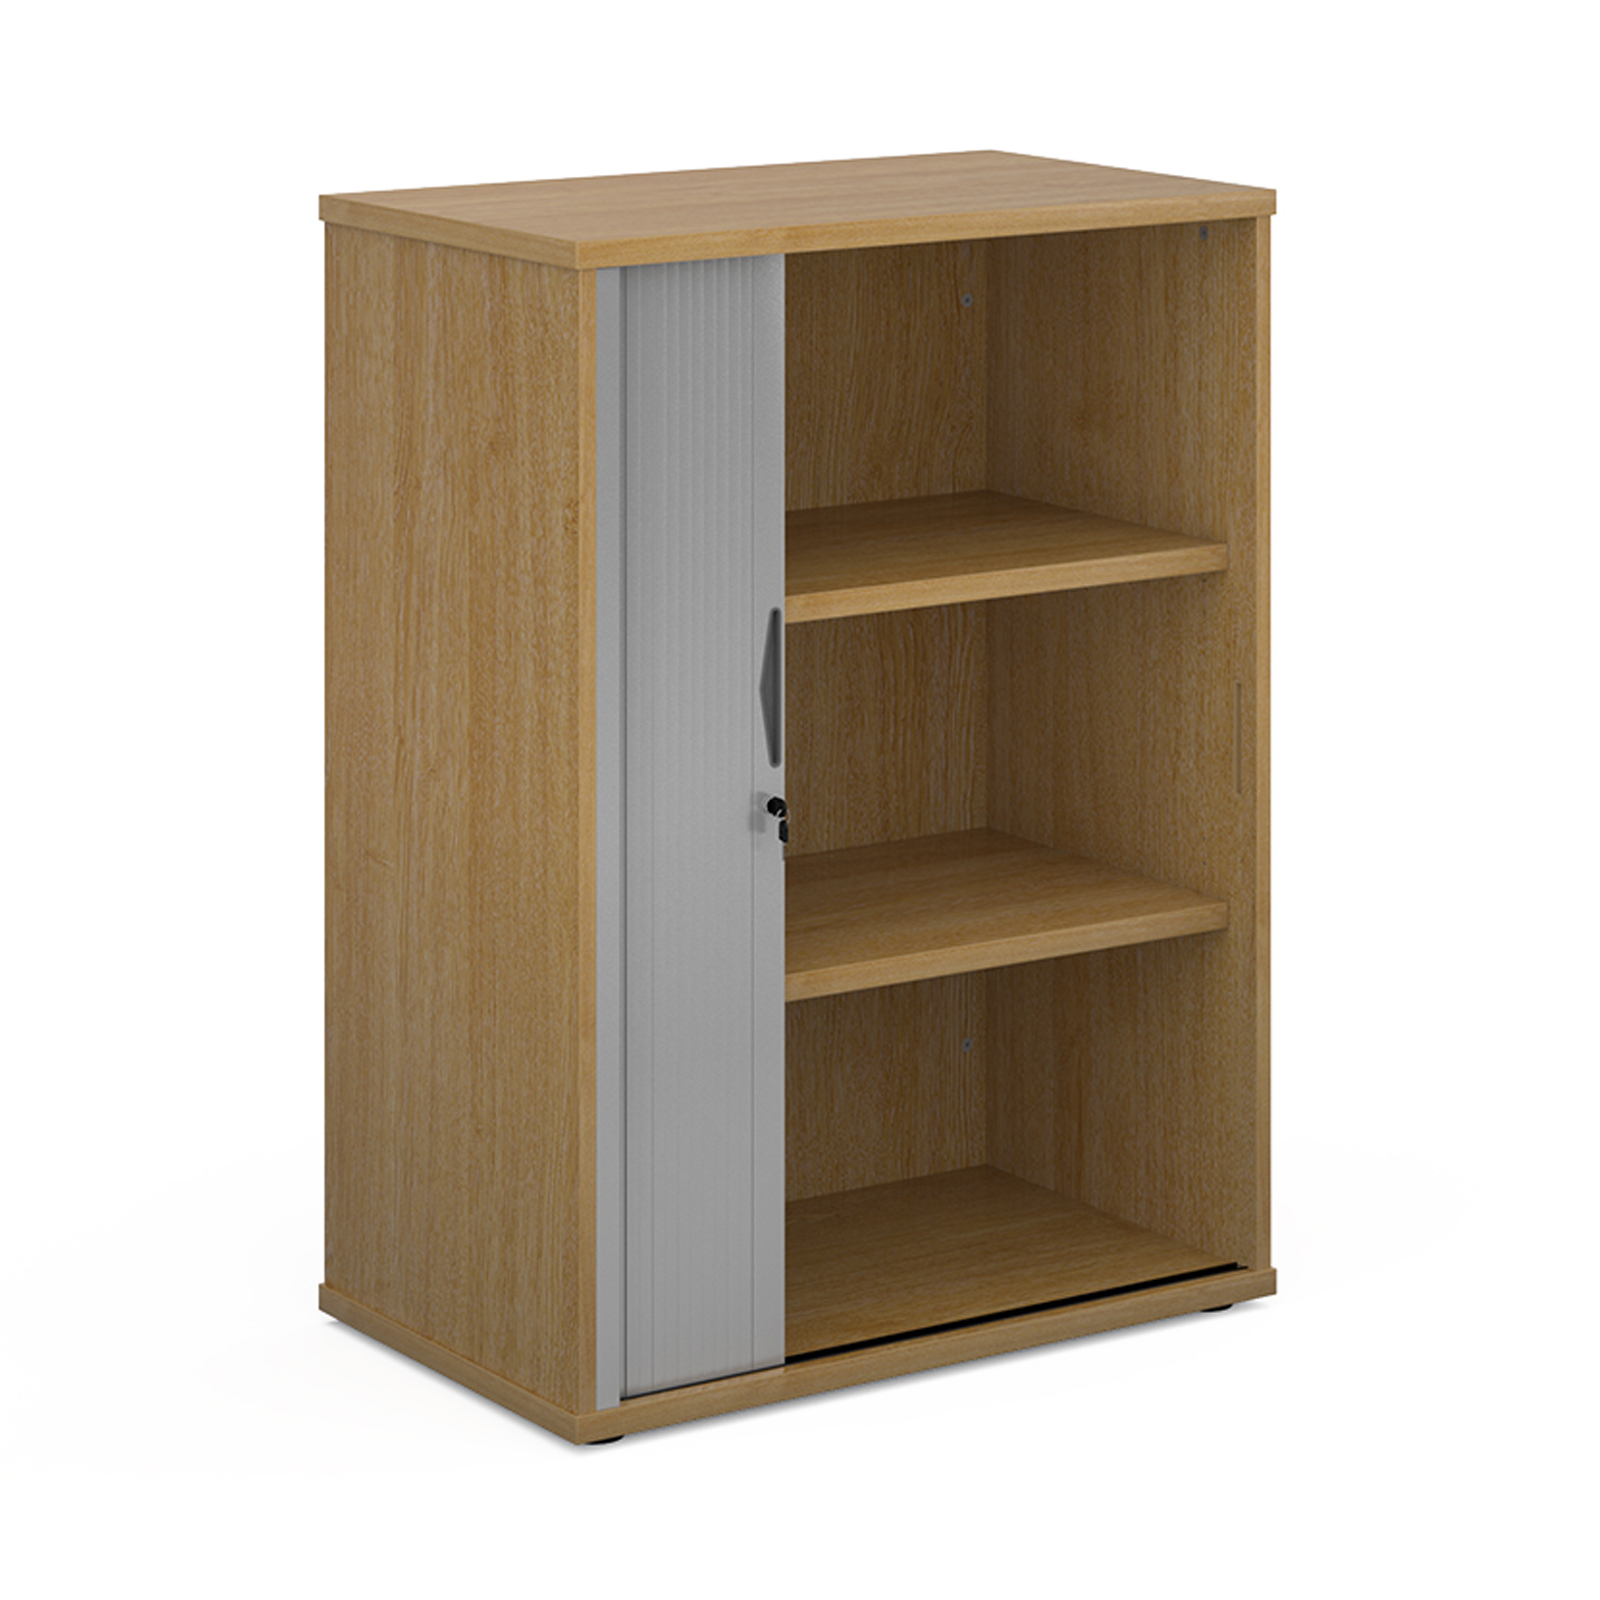 Universal single door tambour cupboard 1090mm high with 2 shelves - oak with silver door